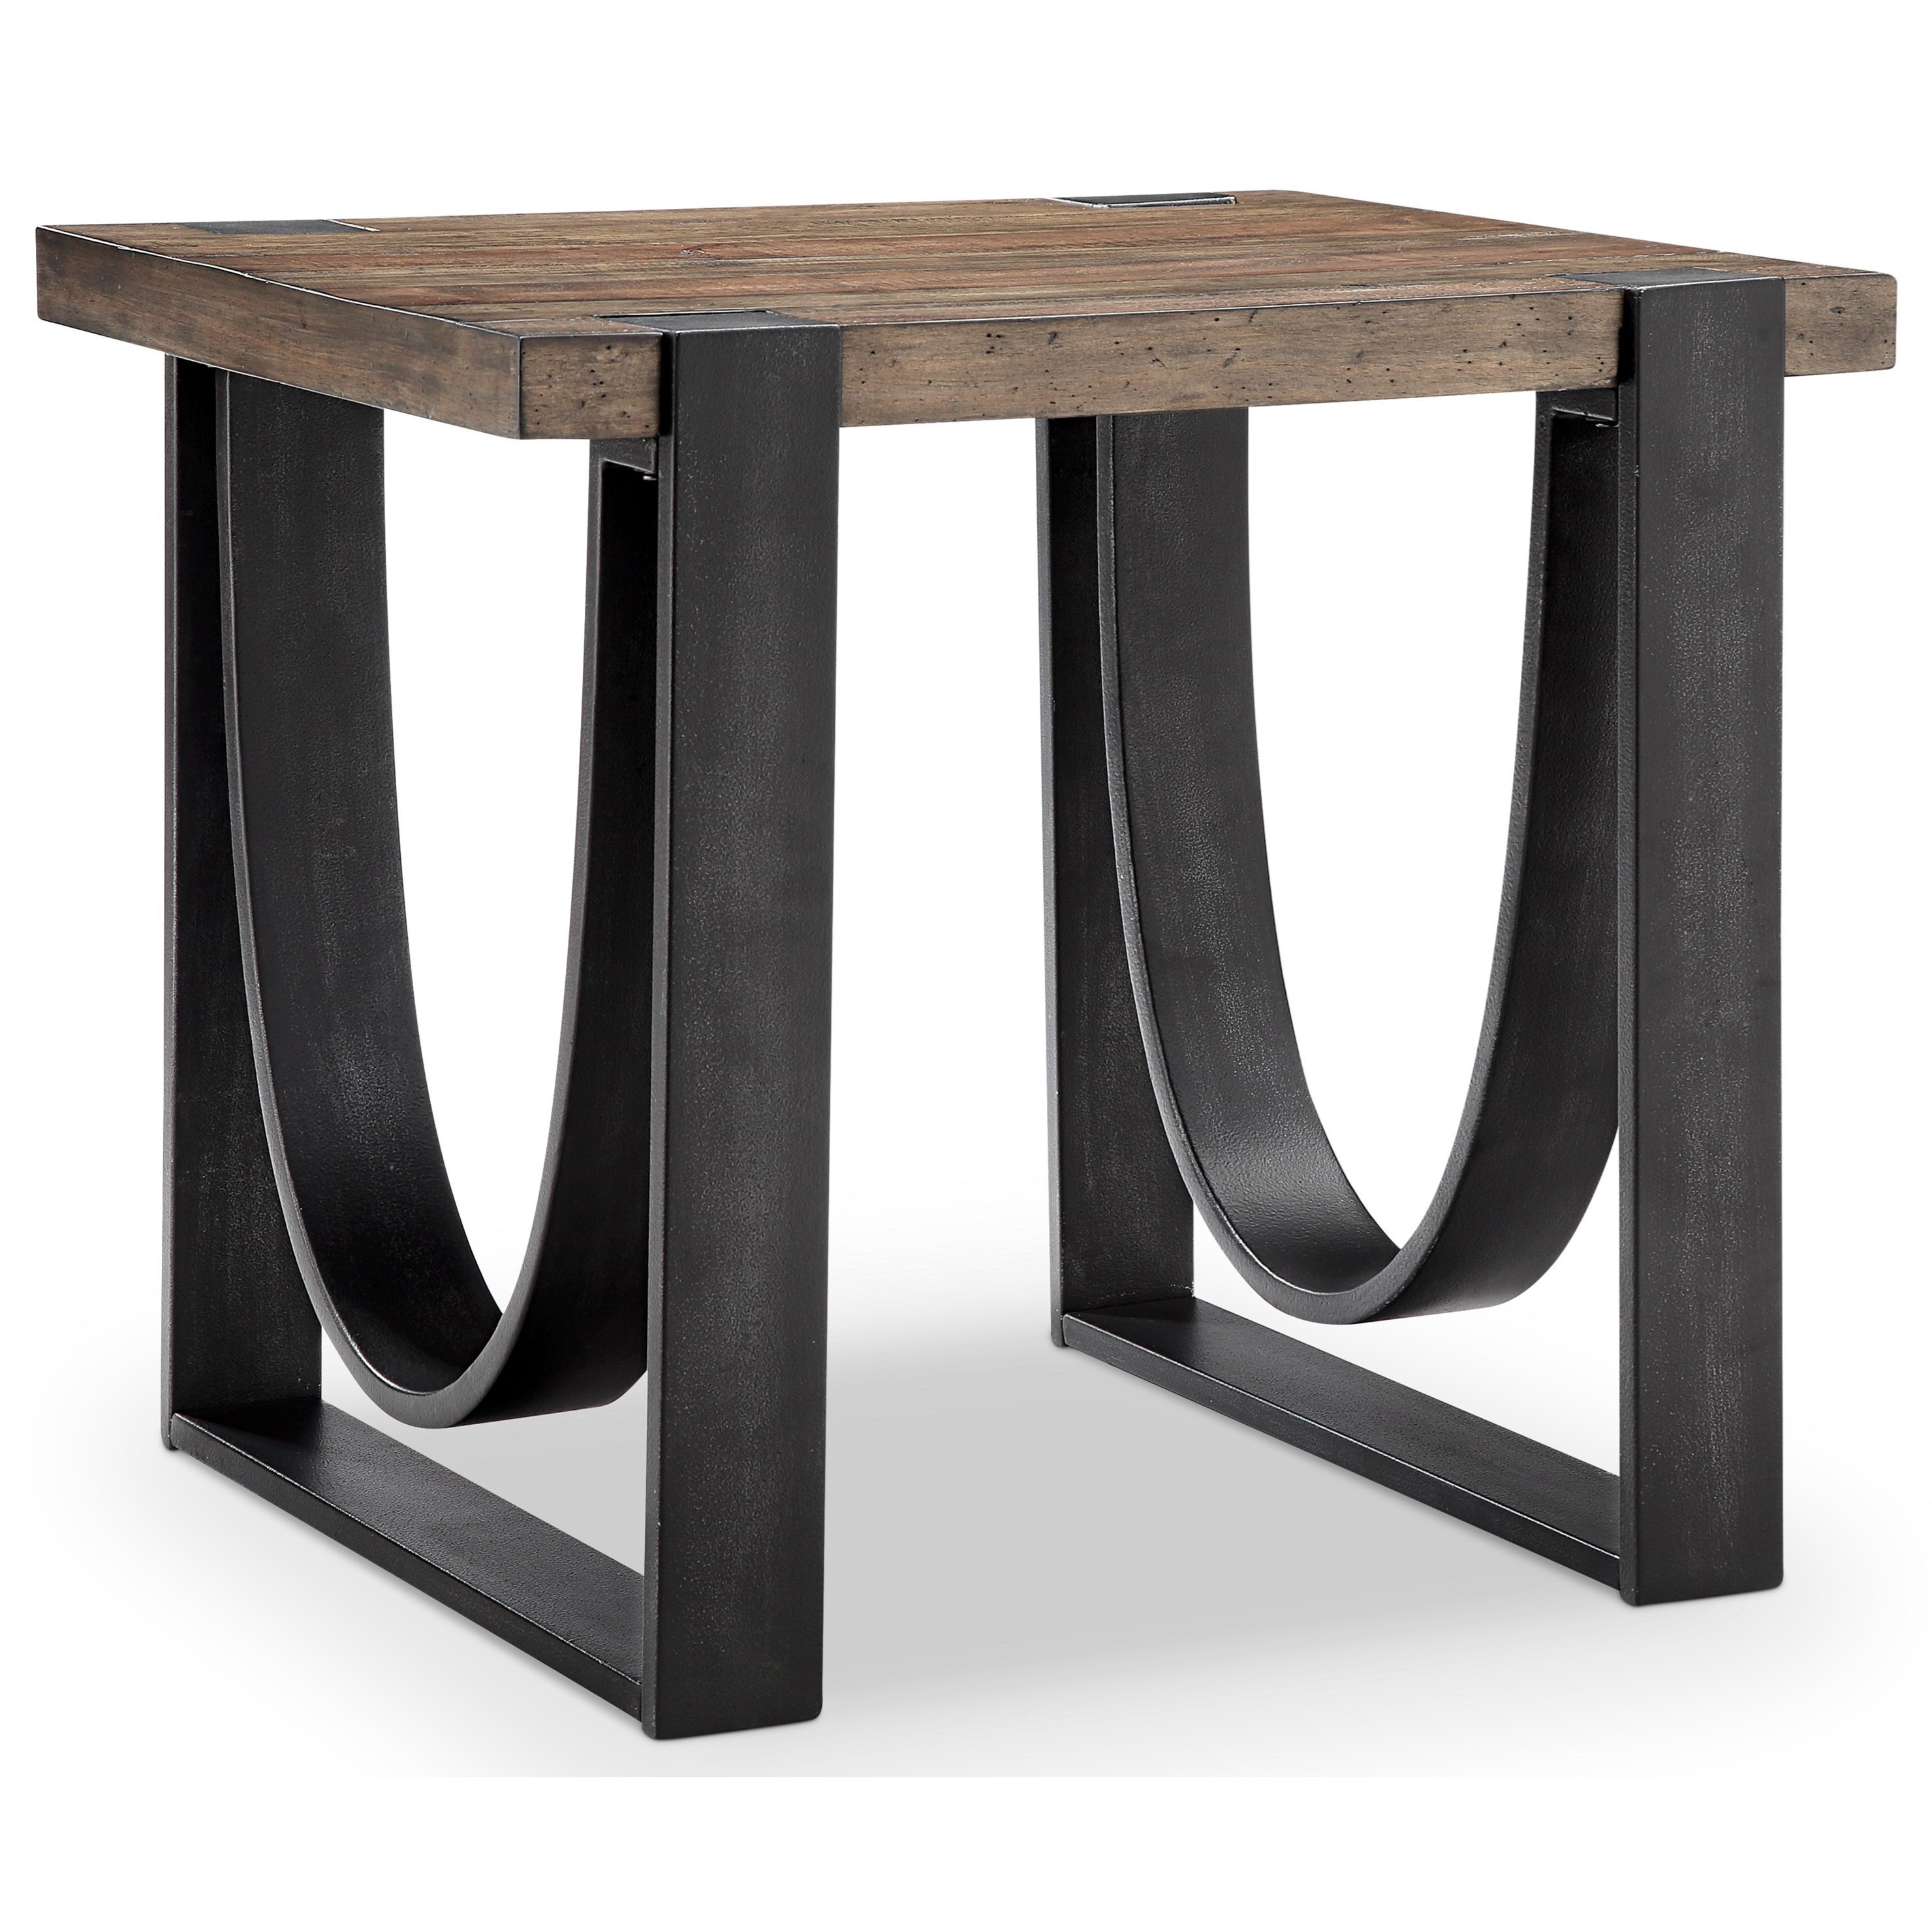 Bowden  Rectangular End Table by Magnussen Home at Baer's Furniture